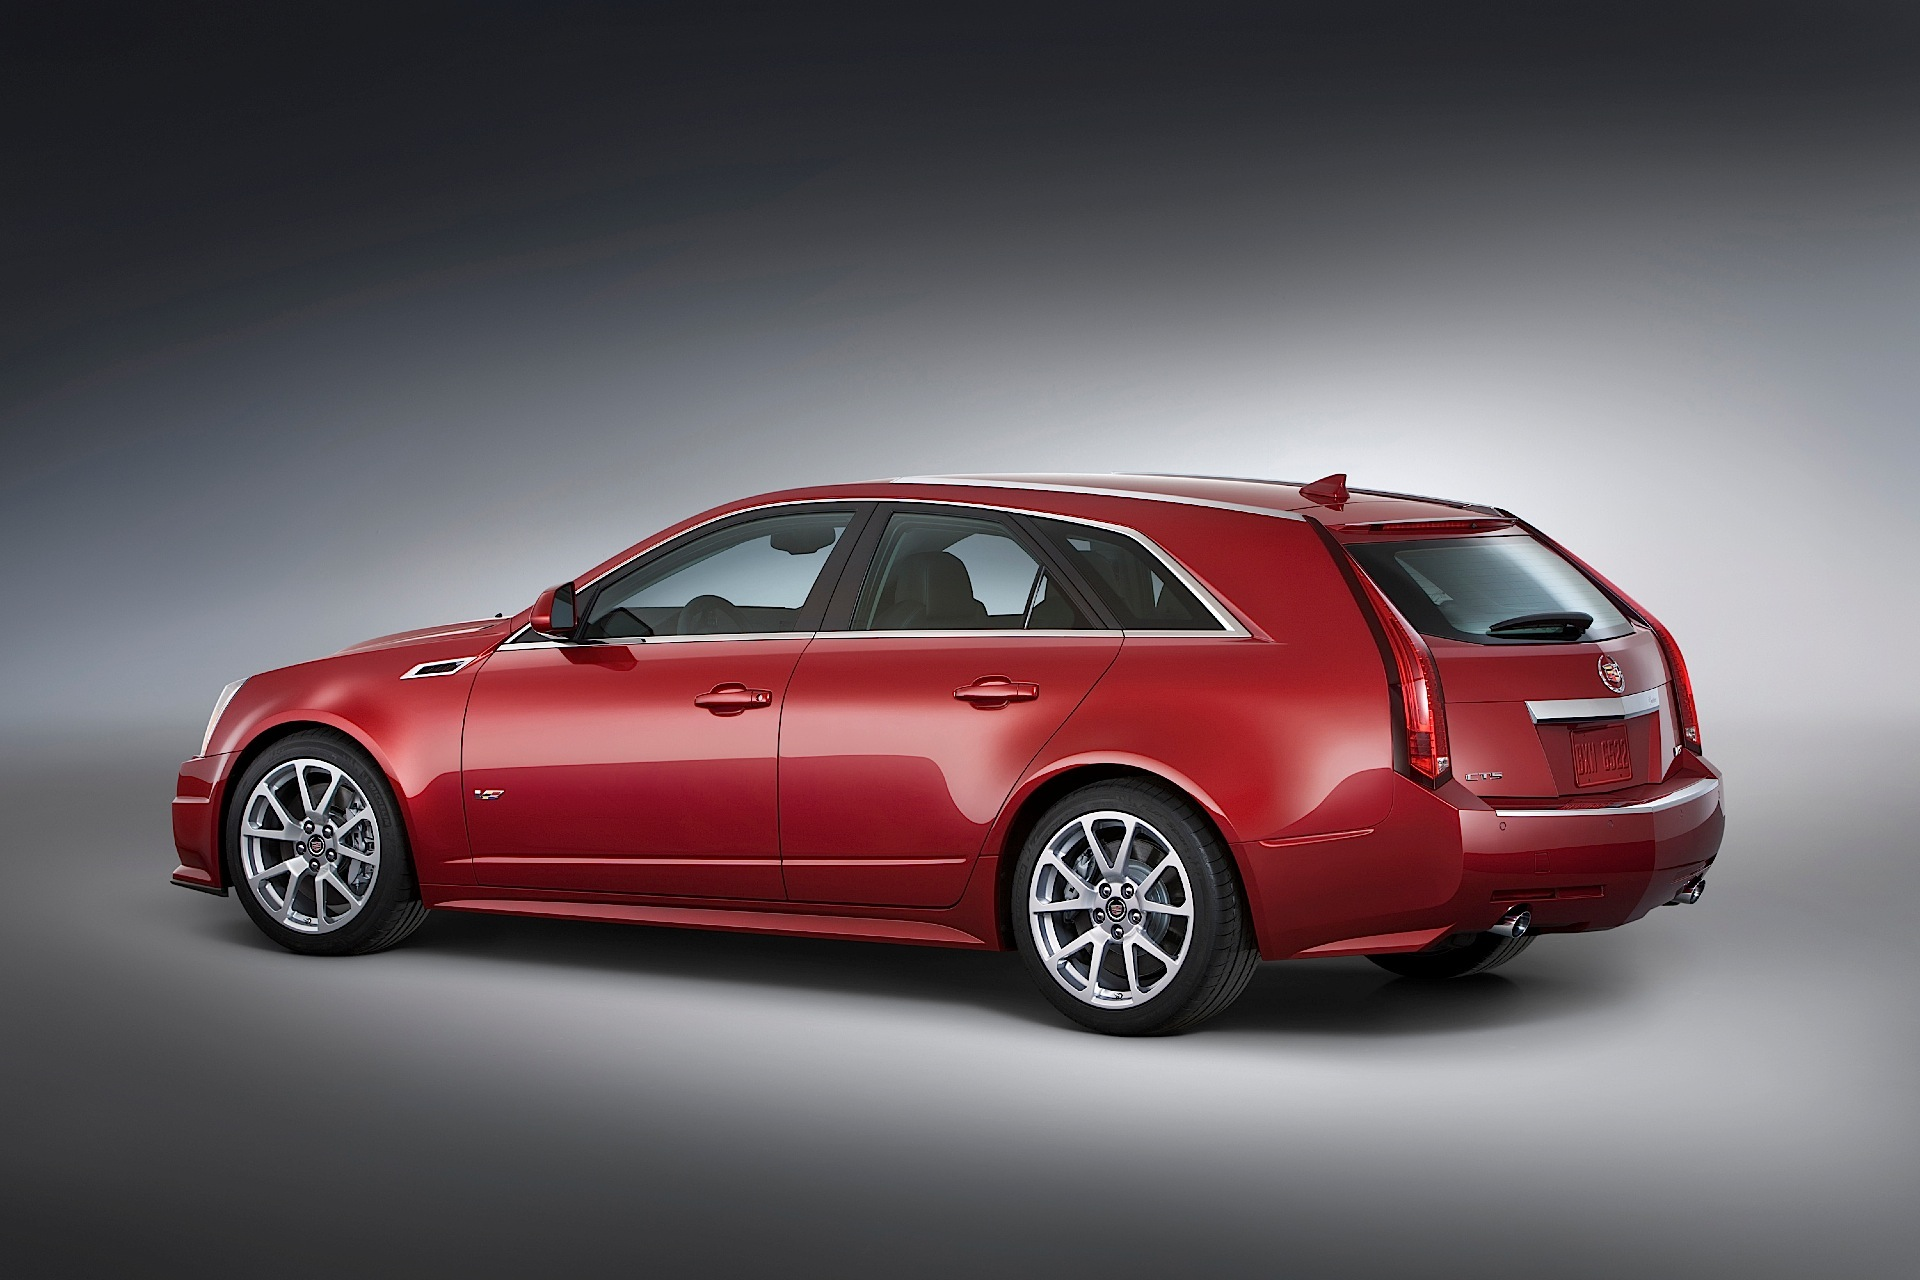 Cadillac Cts V Wagon For Sale >> CADILLAC CTS-V Sport Wagon specs & photos - 2010, 2011, 2012, 2013, 2014, 2015, 2016, 2017, 2018 ...